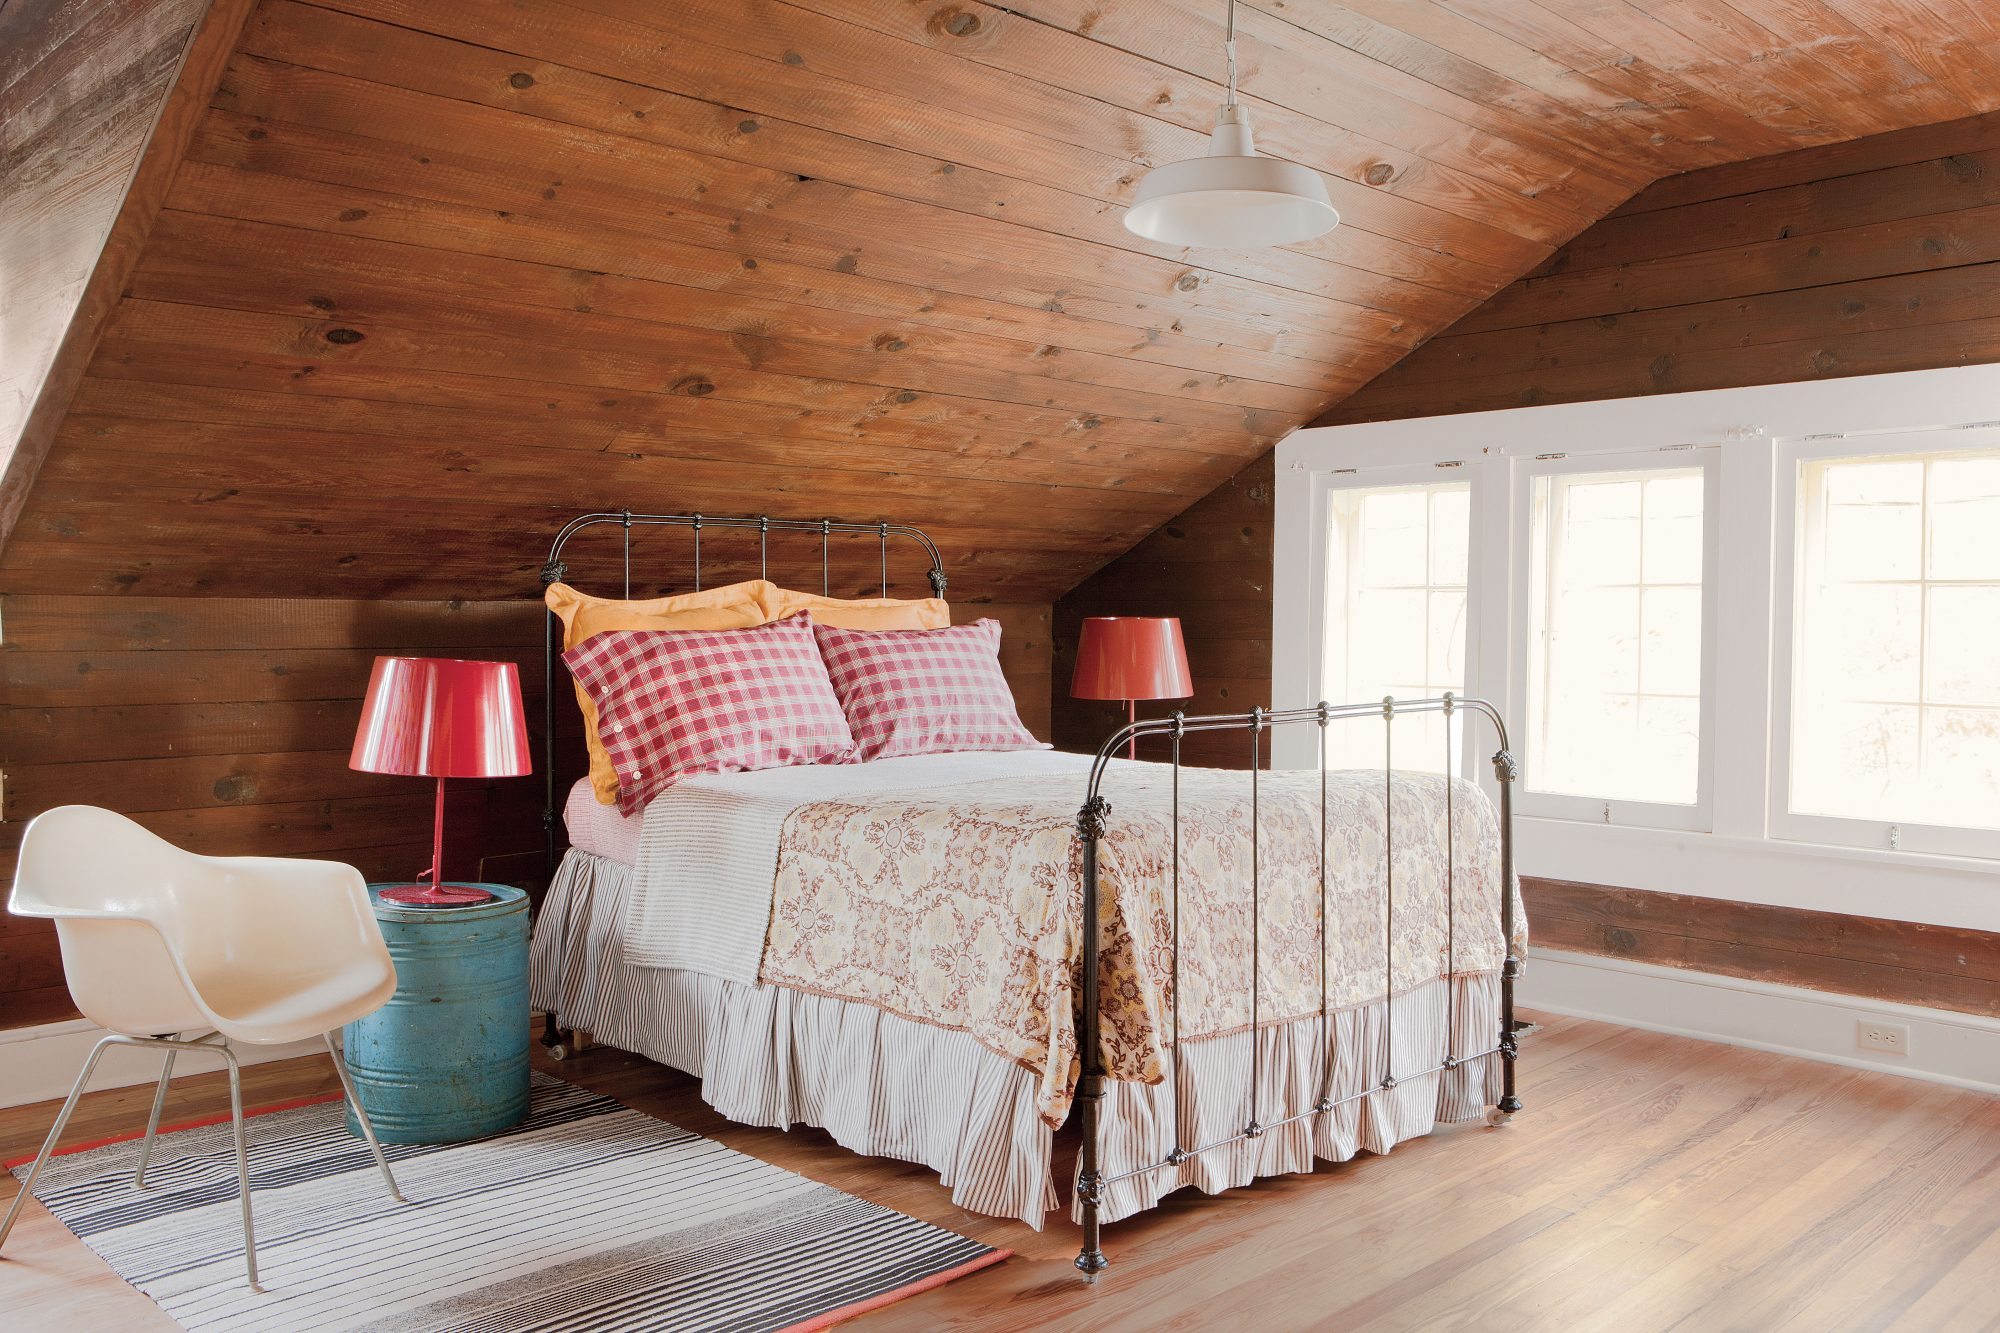 Upstairs Bedroom. Gracious Guest Bedroom Decorating Ideas   Southern Living